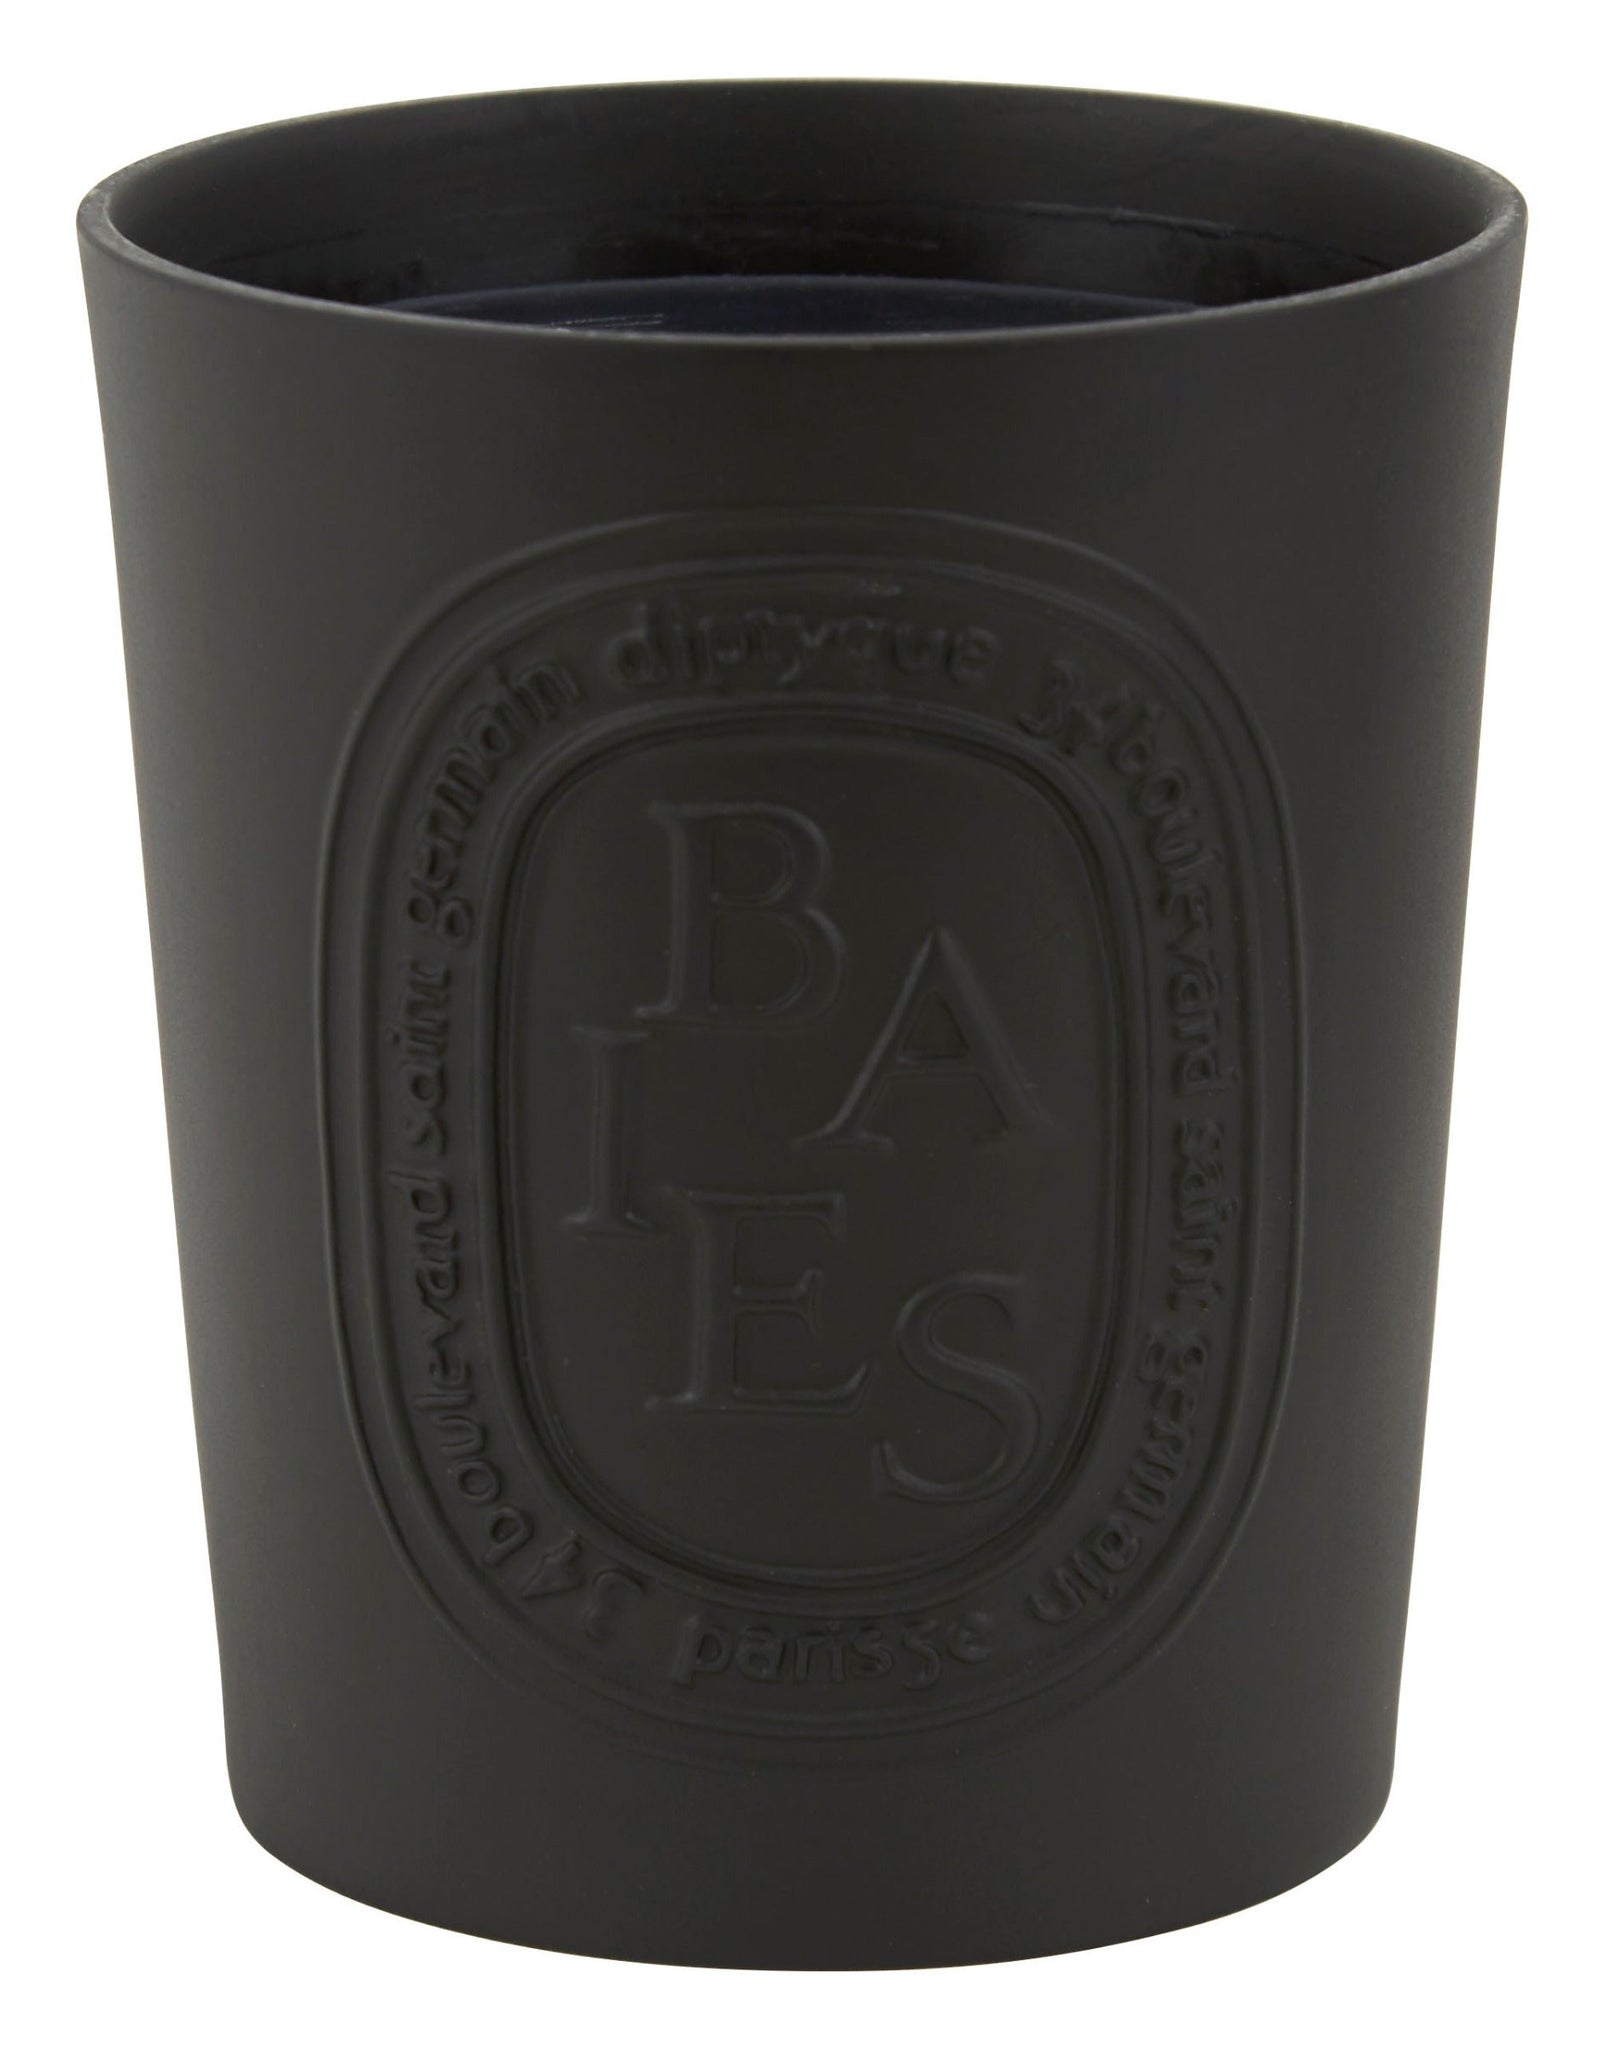 Diptyque Baies Premium Candle